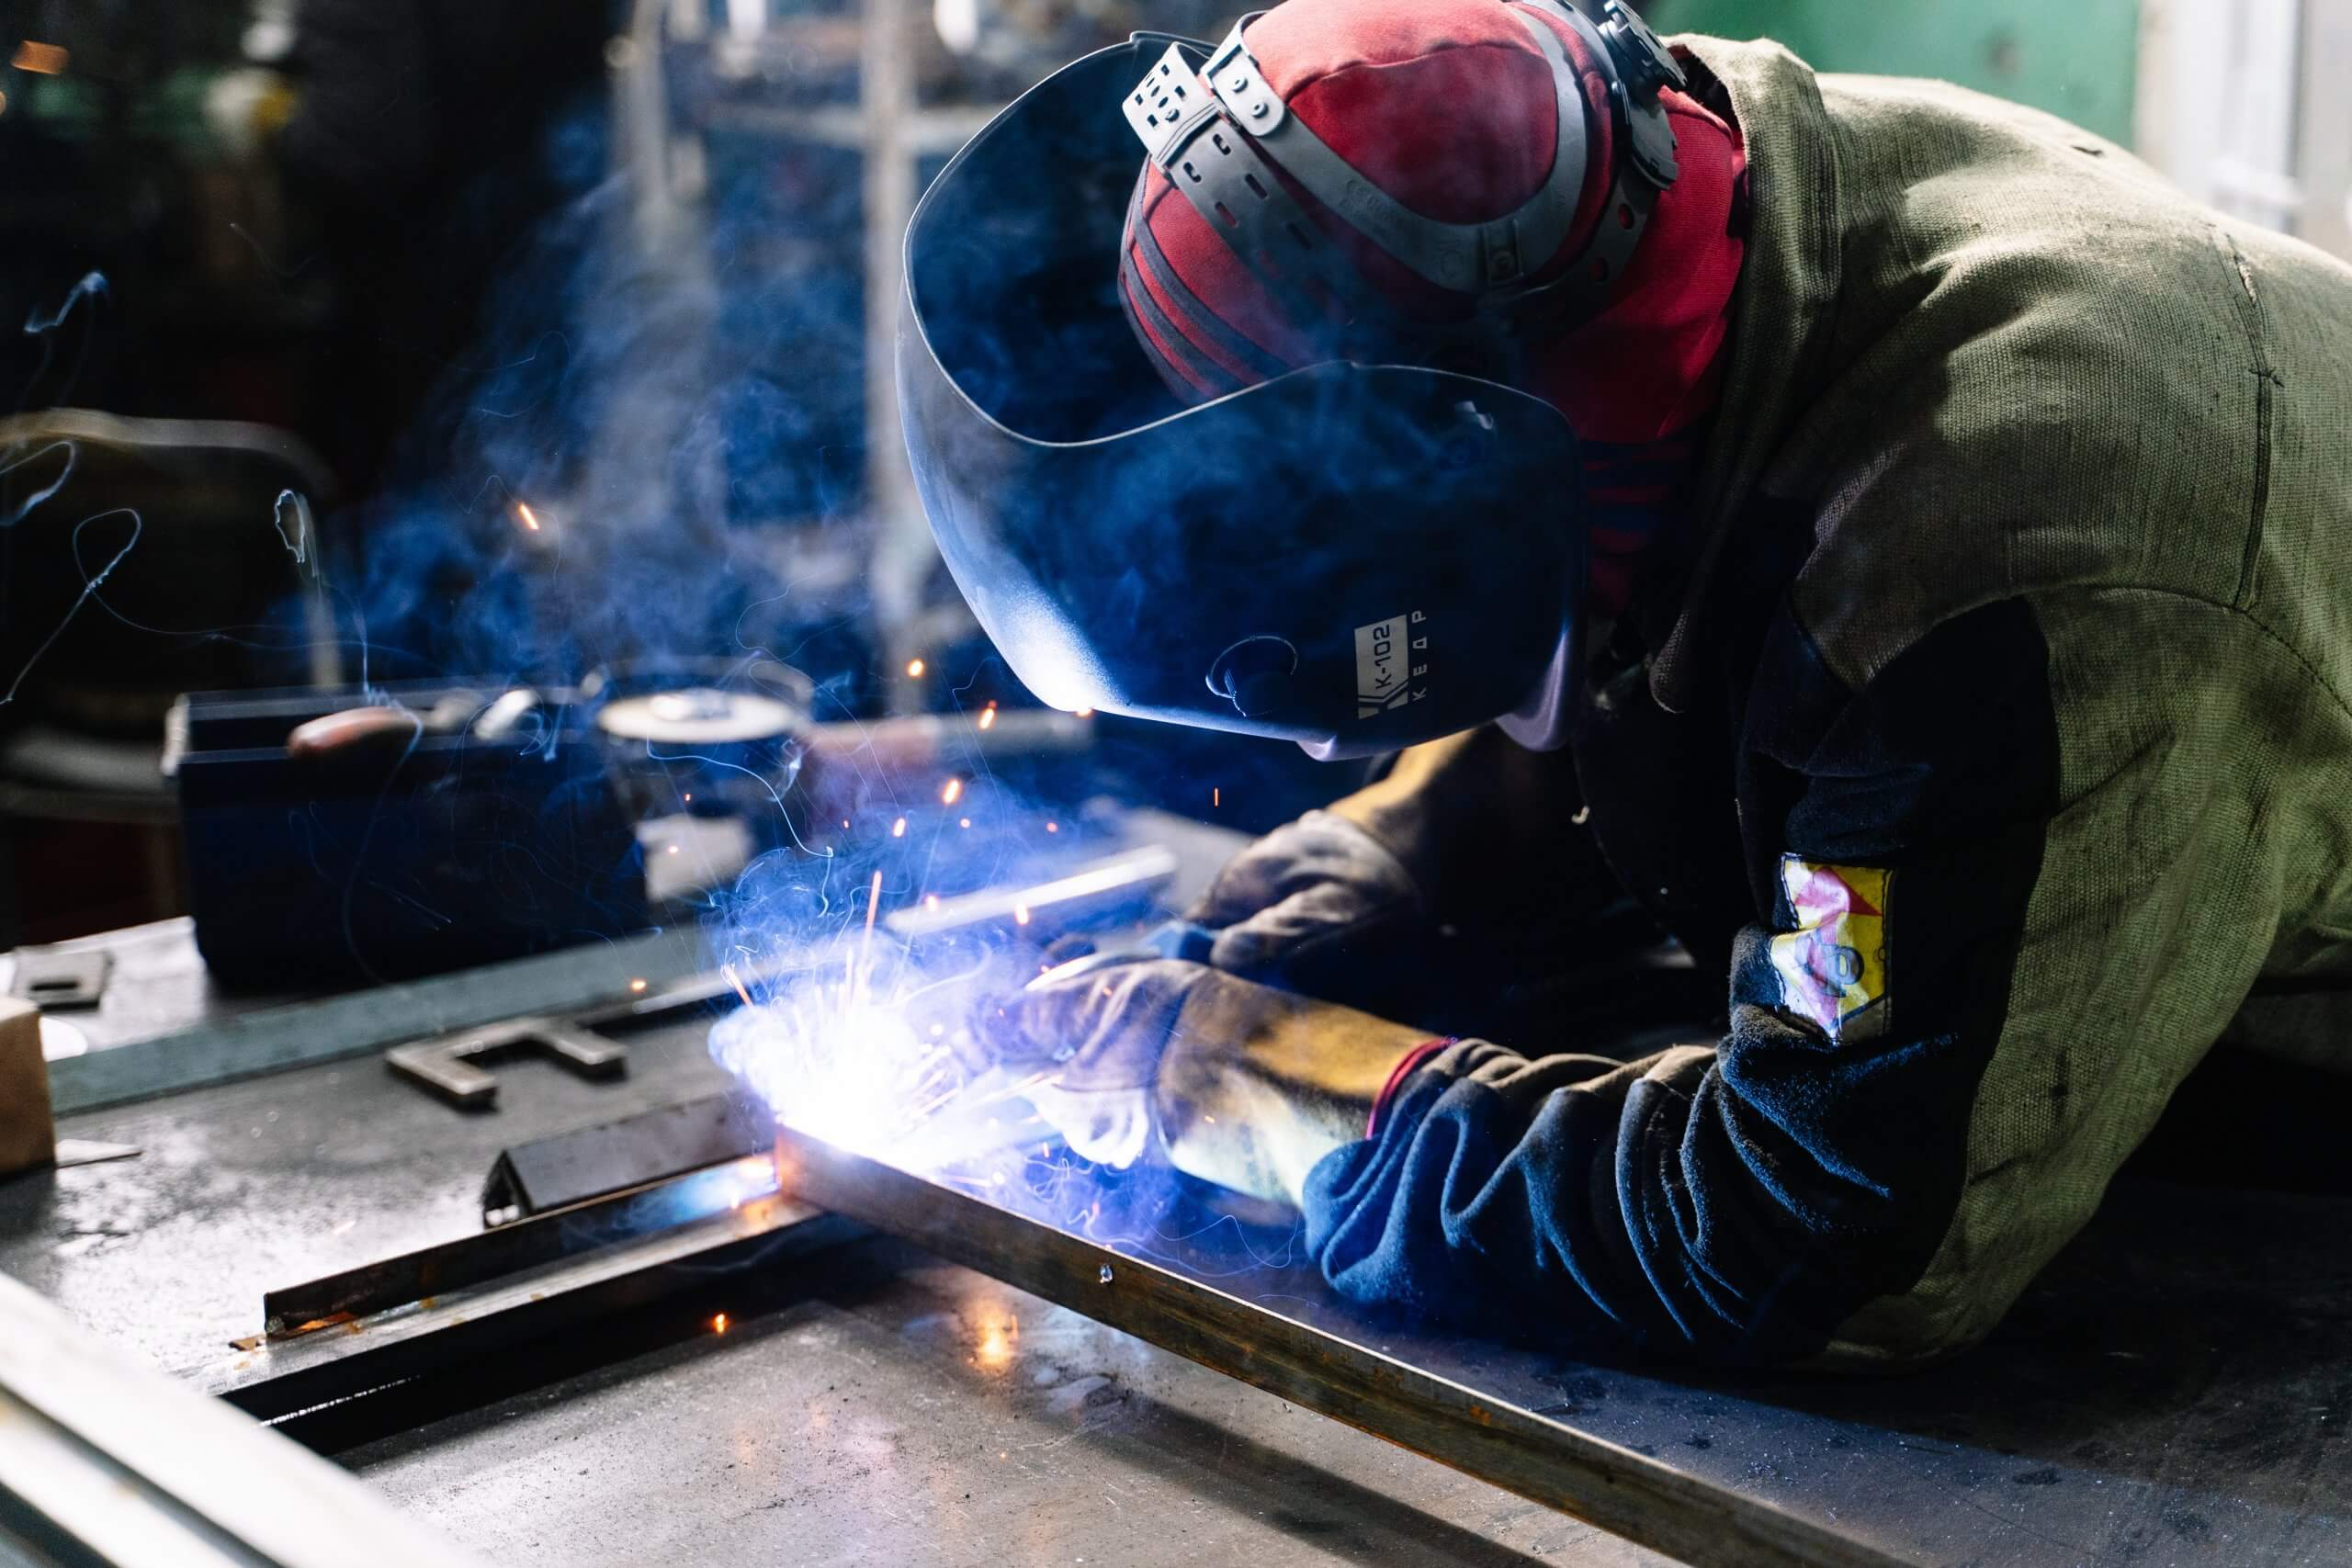 Man welding at workplace